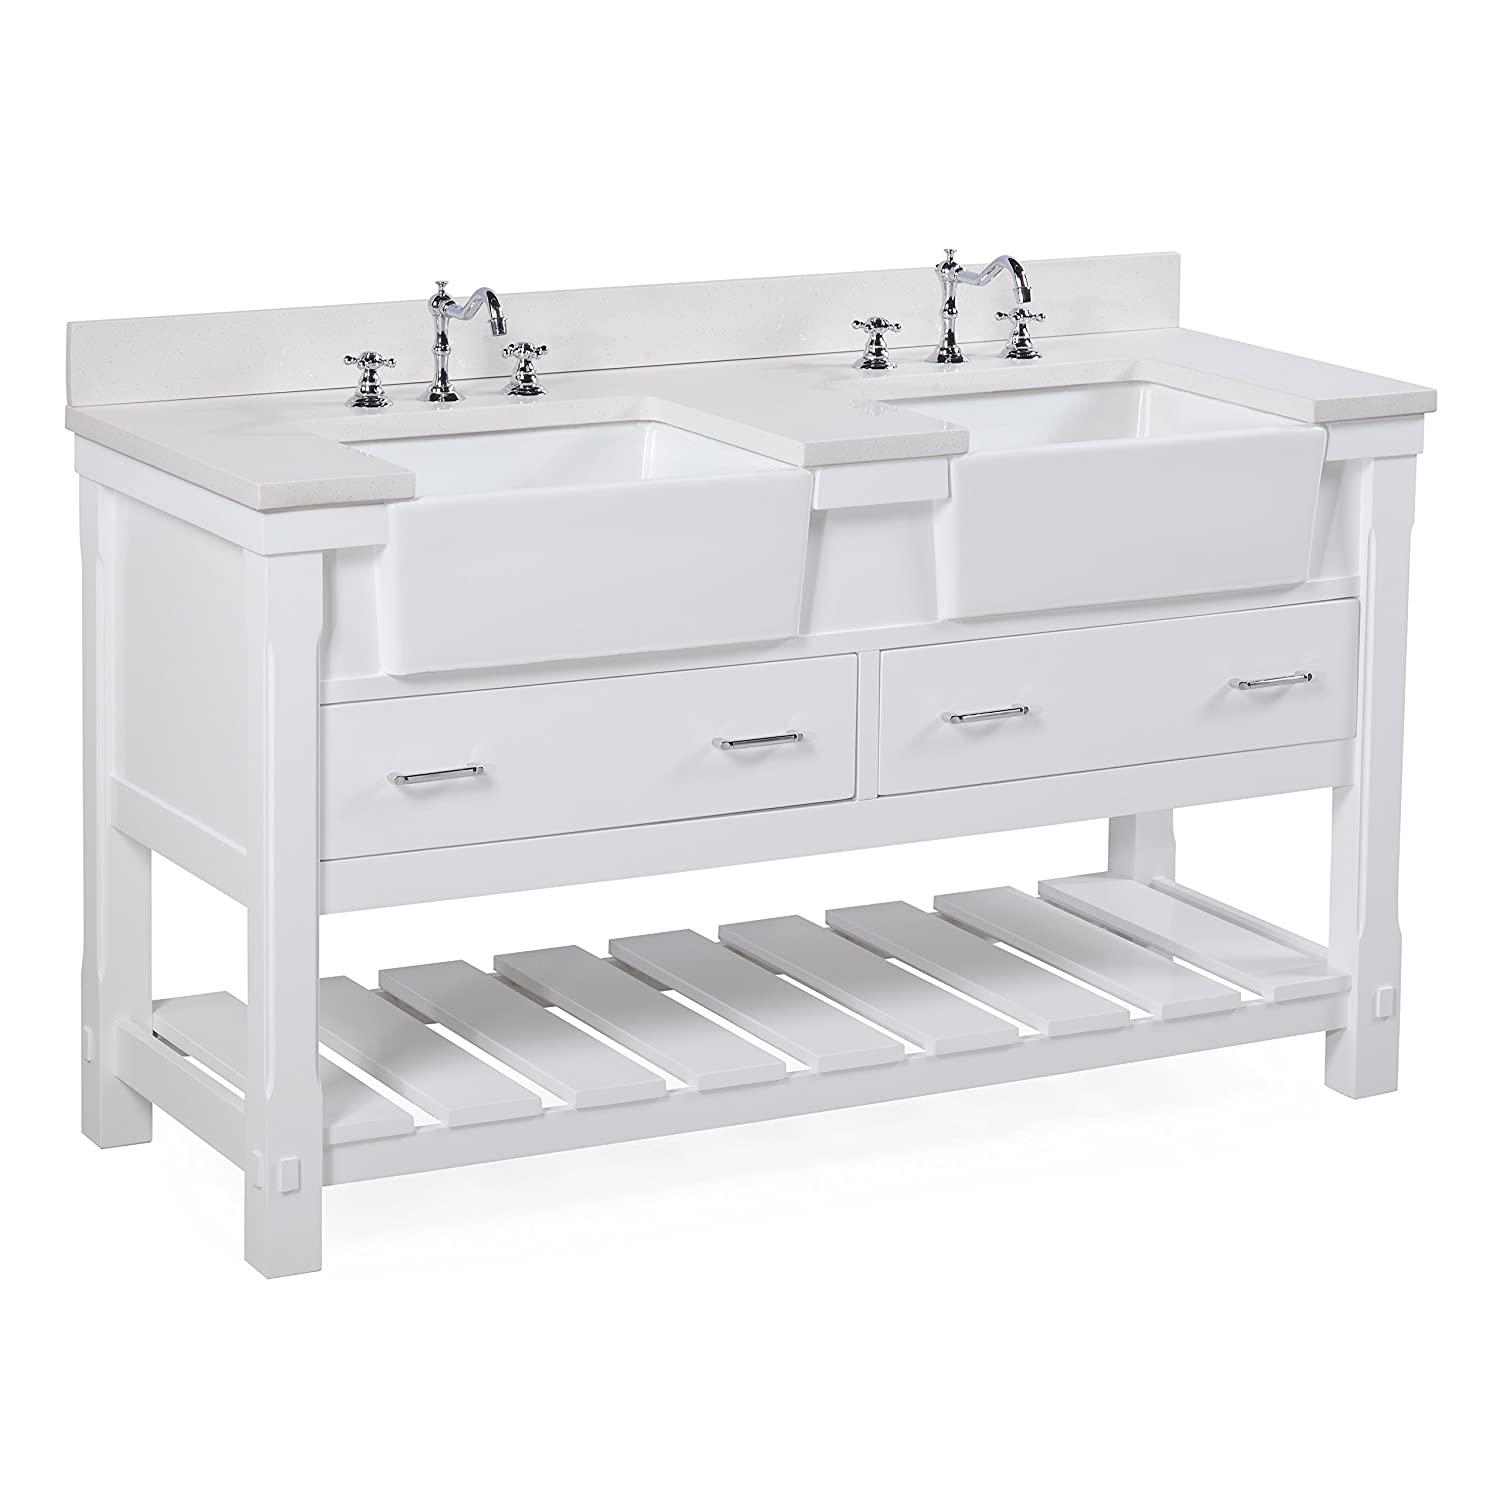 Charlotte 60-inch Double Bathroom Vanity Quartz White Includes a White Quartz Countertop, White Cabinet with Soft Close Drawers, and White Ceramic Farmhouse Apron Sinks